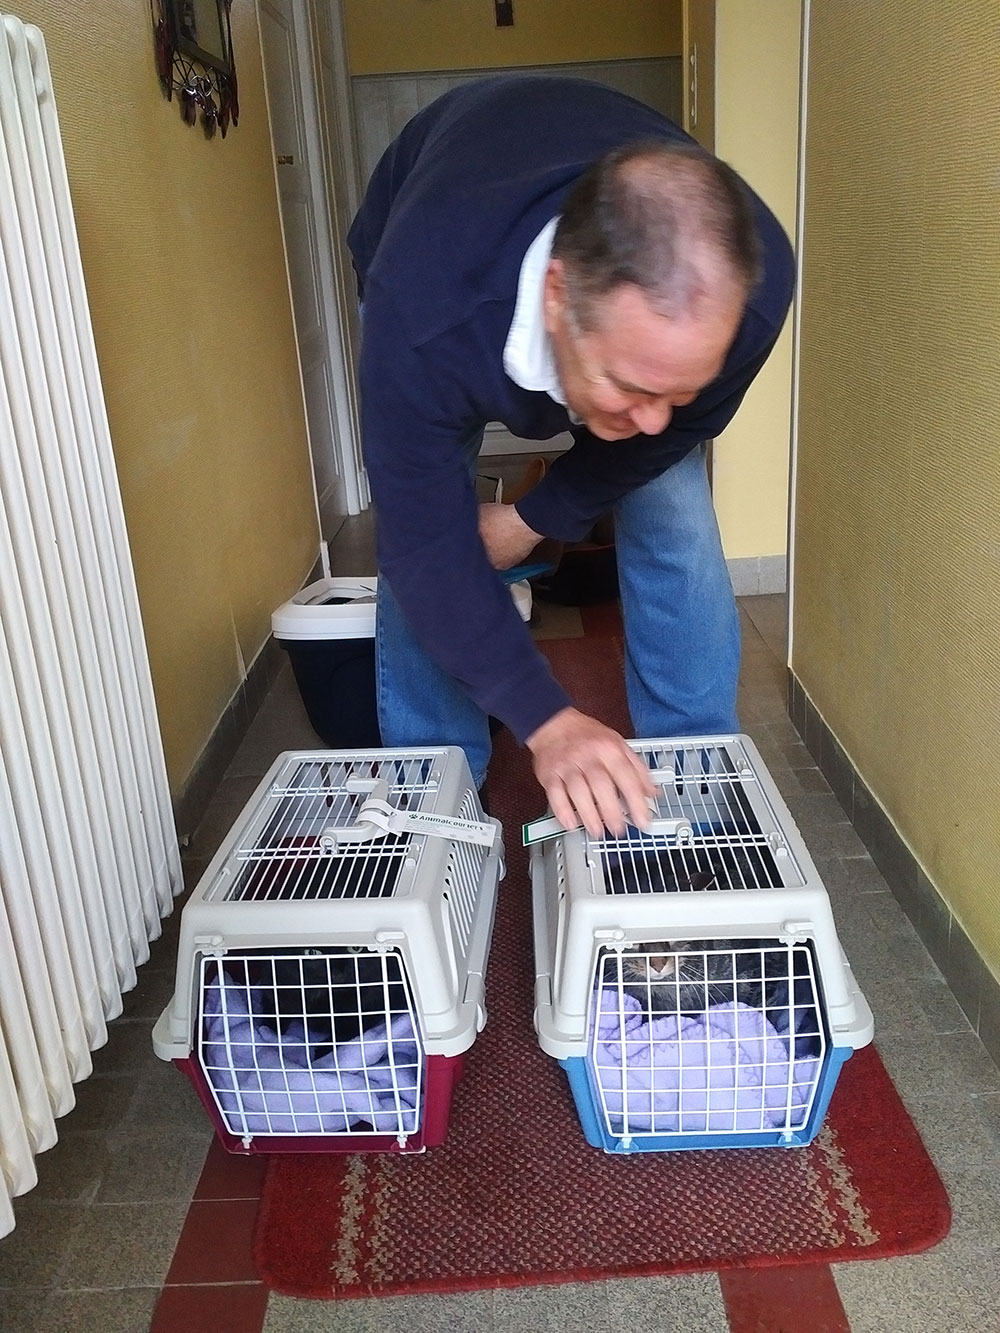 reunions in France — A warm welcome for cats Sam and Evie at their new home in the Dordogne